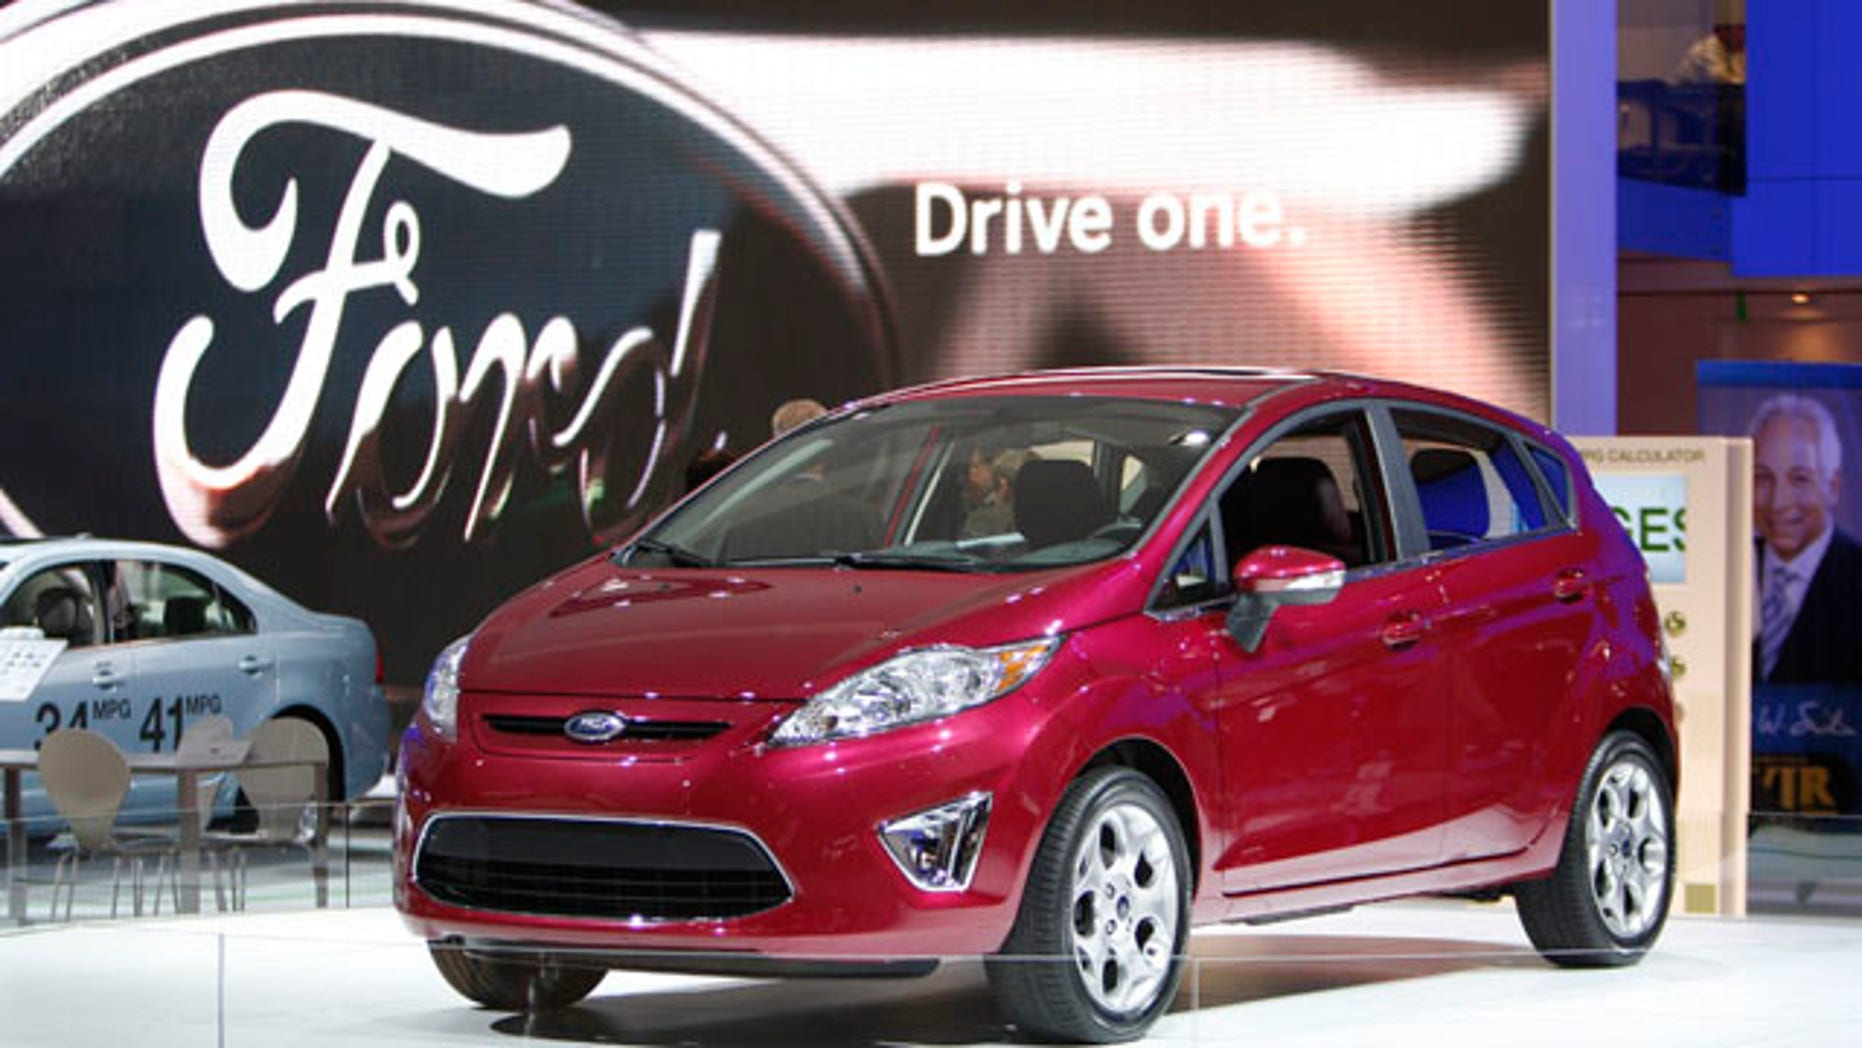 Oct. 26, 2010: Ford Motor Co.'s third-quarter net income rose 68 percent Tuesday, as it grabbed a bigger share of the U.S. auto market and buyers paid more for its highly-rated cars and trucks.